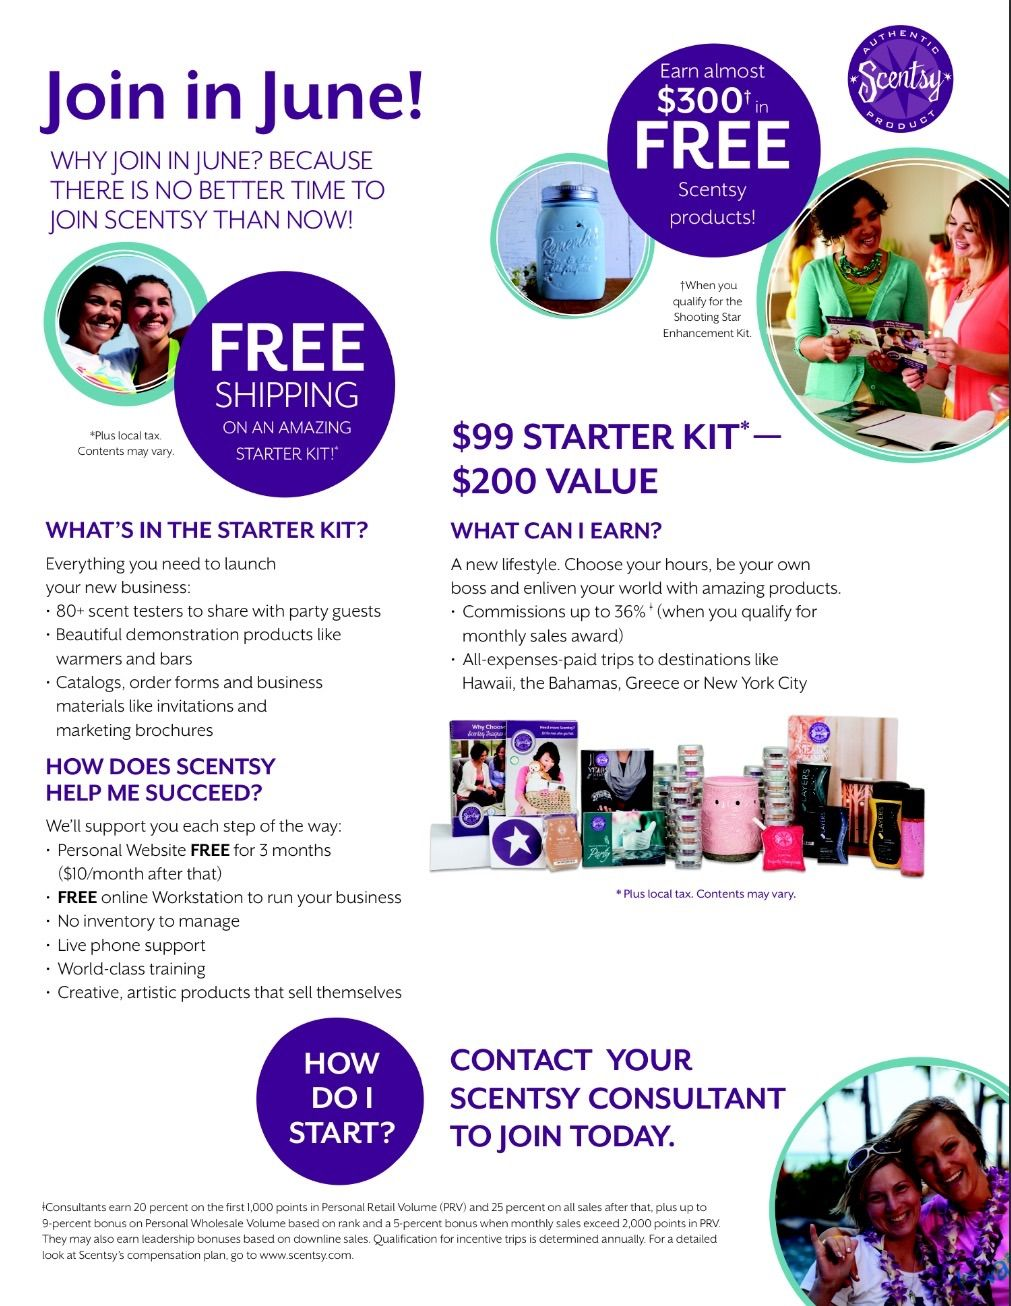 Basically you pay $99 plus tax for your starter kit, it ships free! If you have 500 PRV (personal retail volume) in your first 15 days as a consultant you earn the shooting star kit! Typically when you earn this, you pay a reduced rate of $200, but for June ONLY it's free!! What are YOU waiting for? You can earn trips with Scentsy! It's very flexible with low requirements to stay active! www.juliepreston.scentsy.us/join